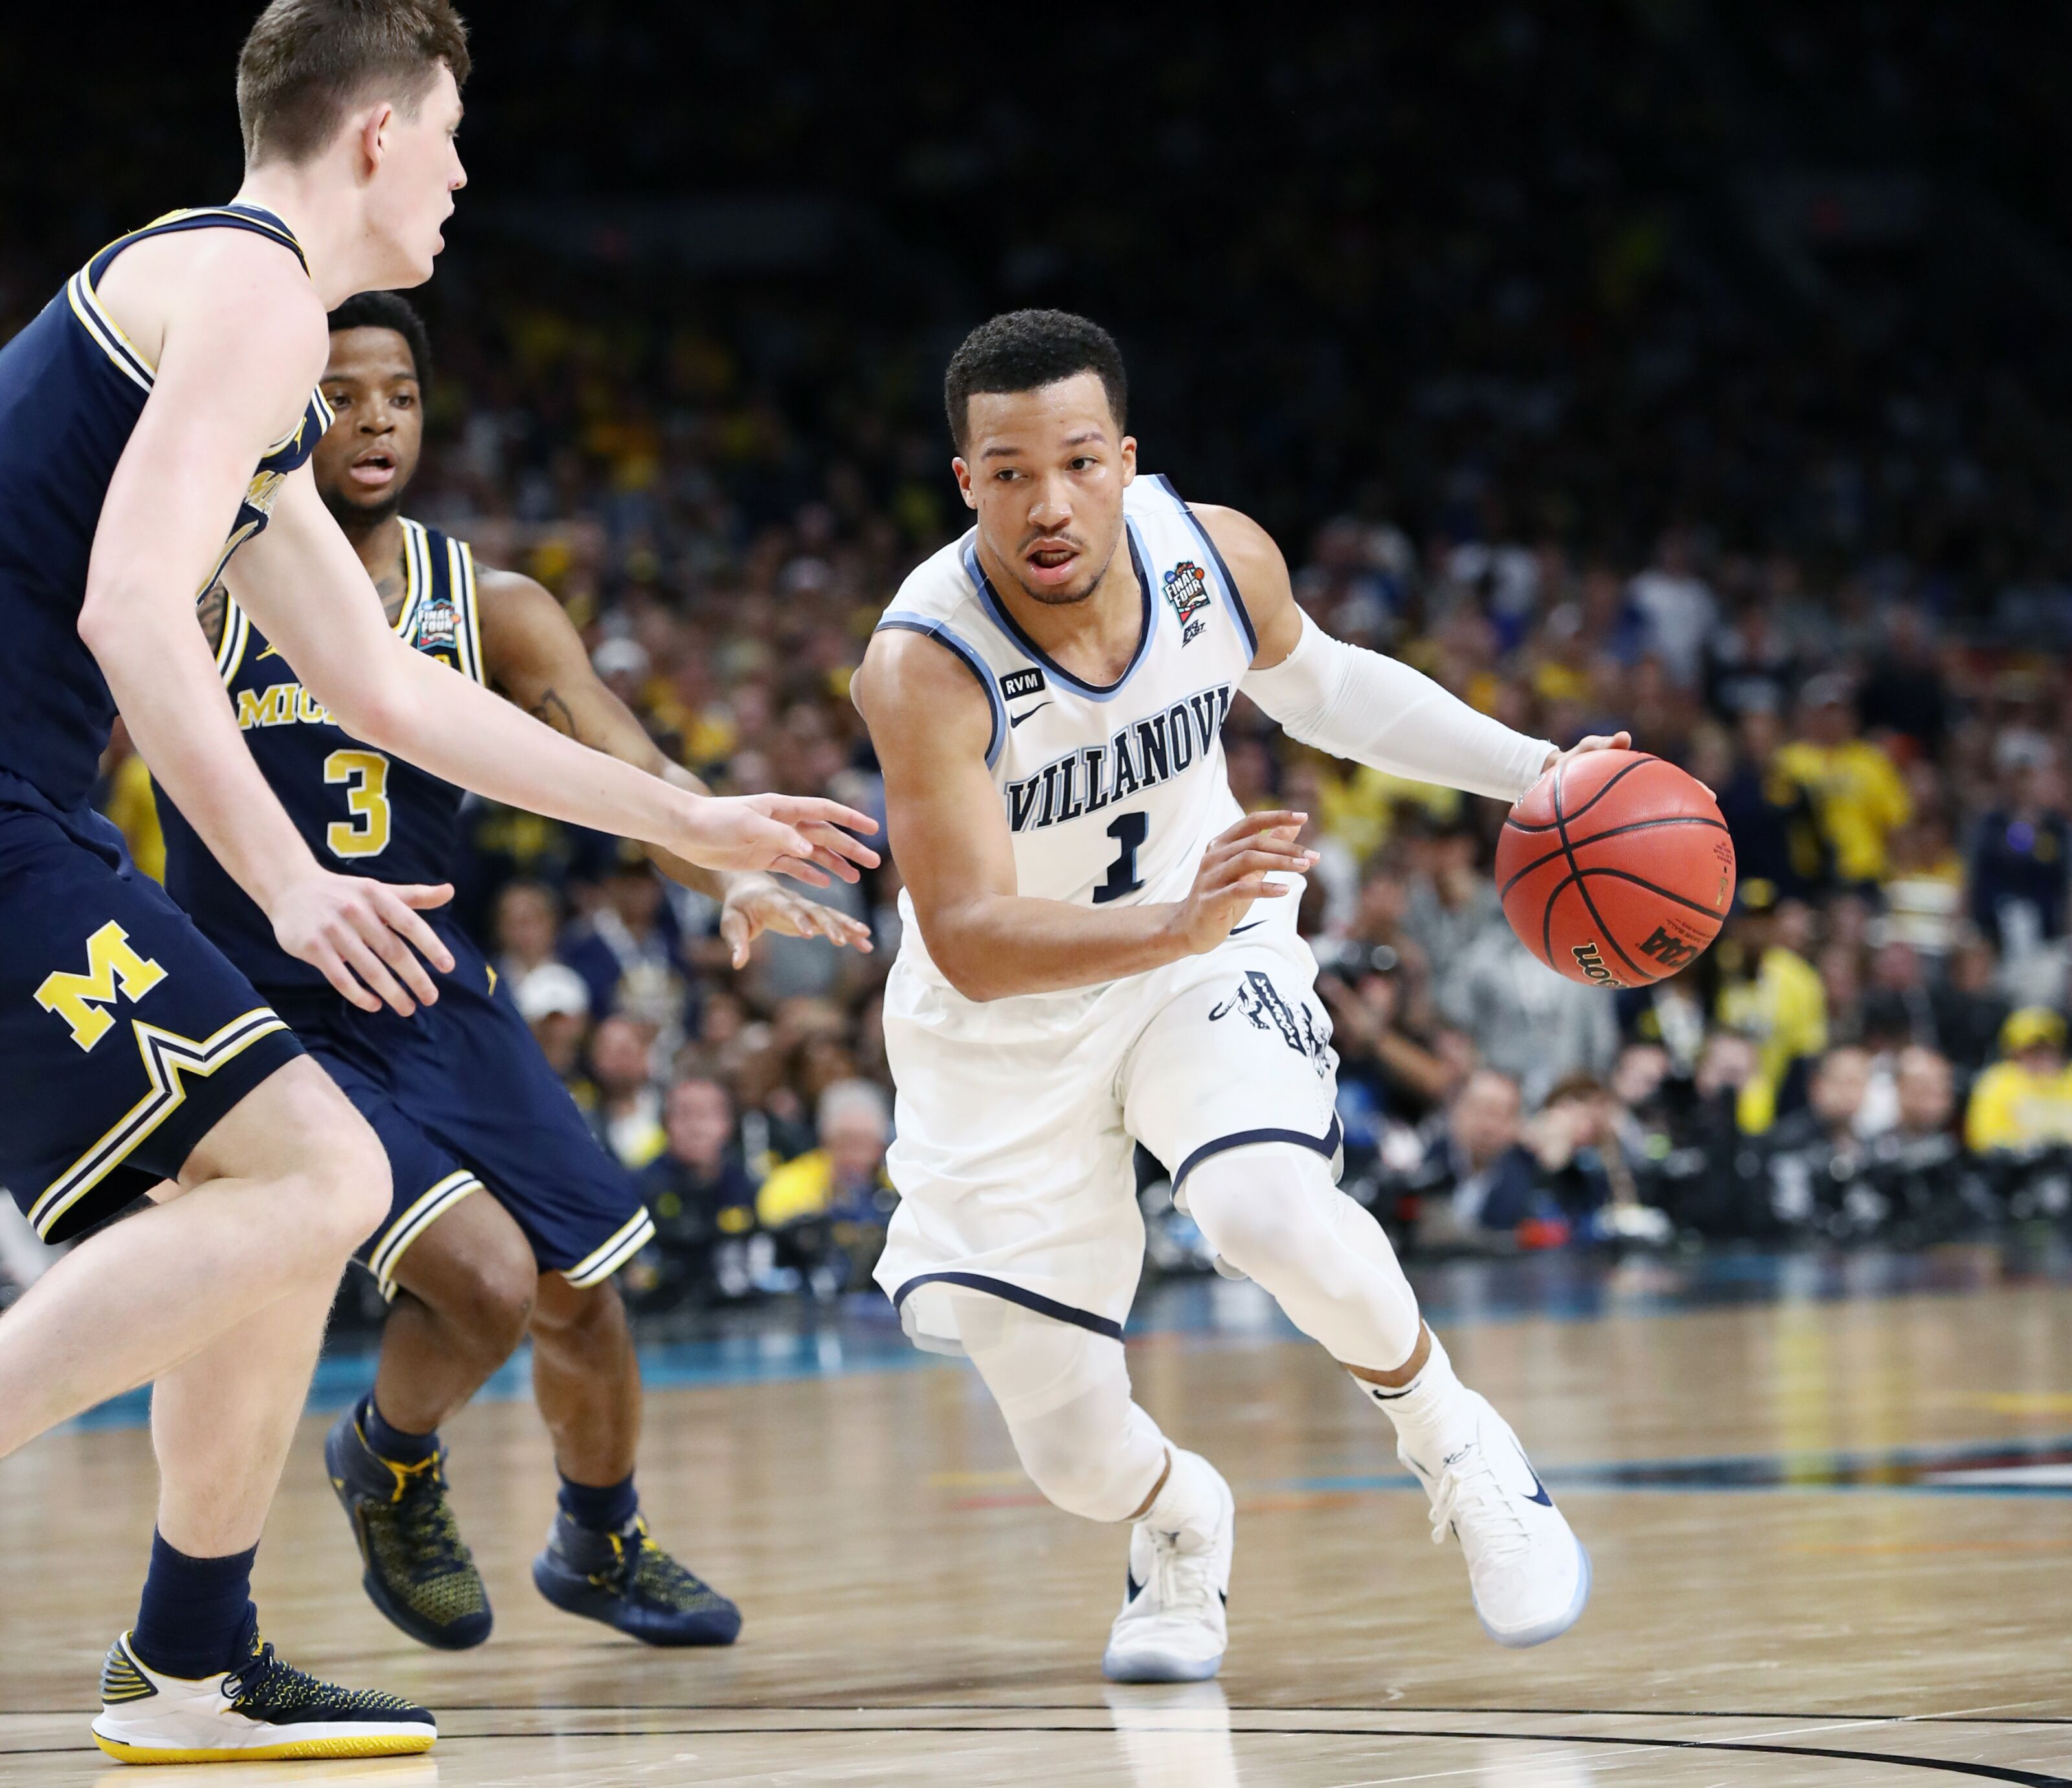 Dallas Mavericks: Jalen Brunson is the guard of the future